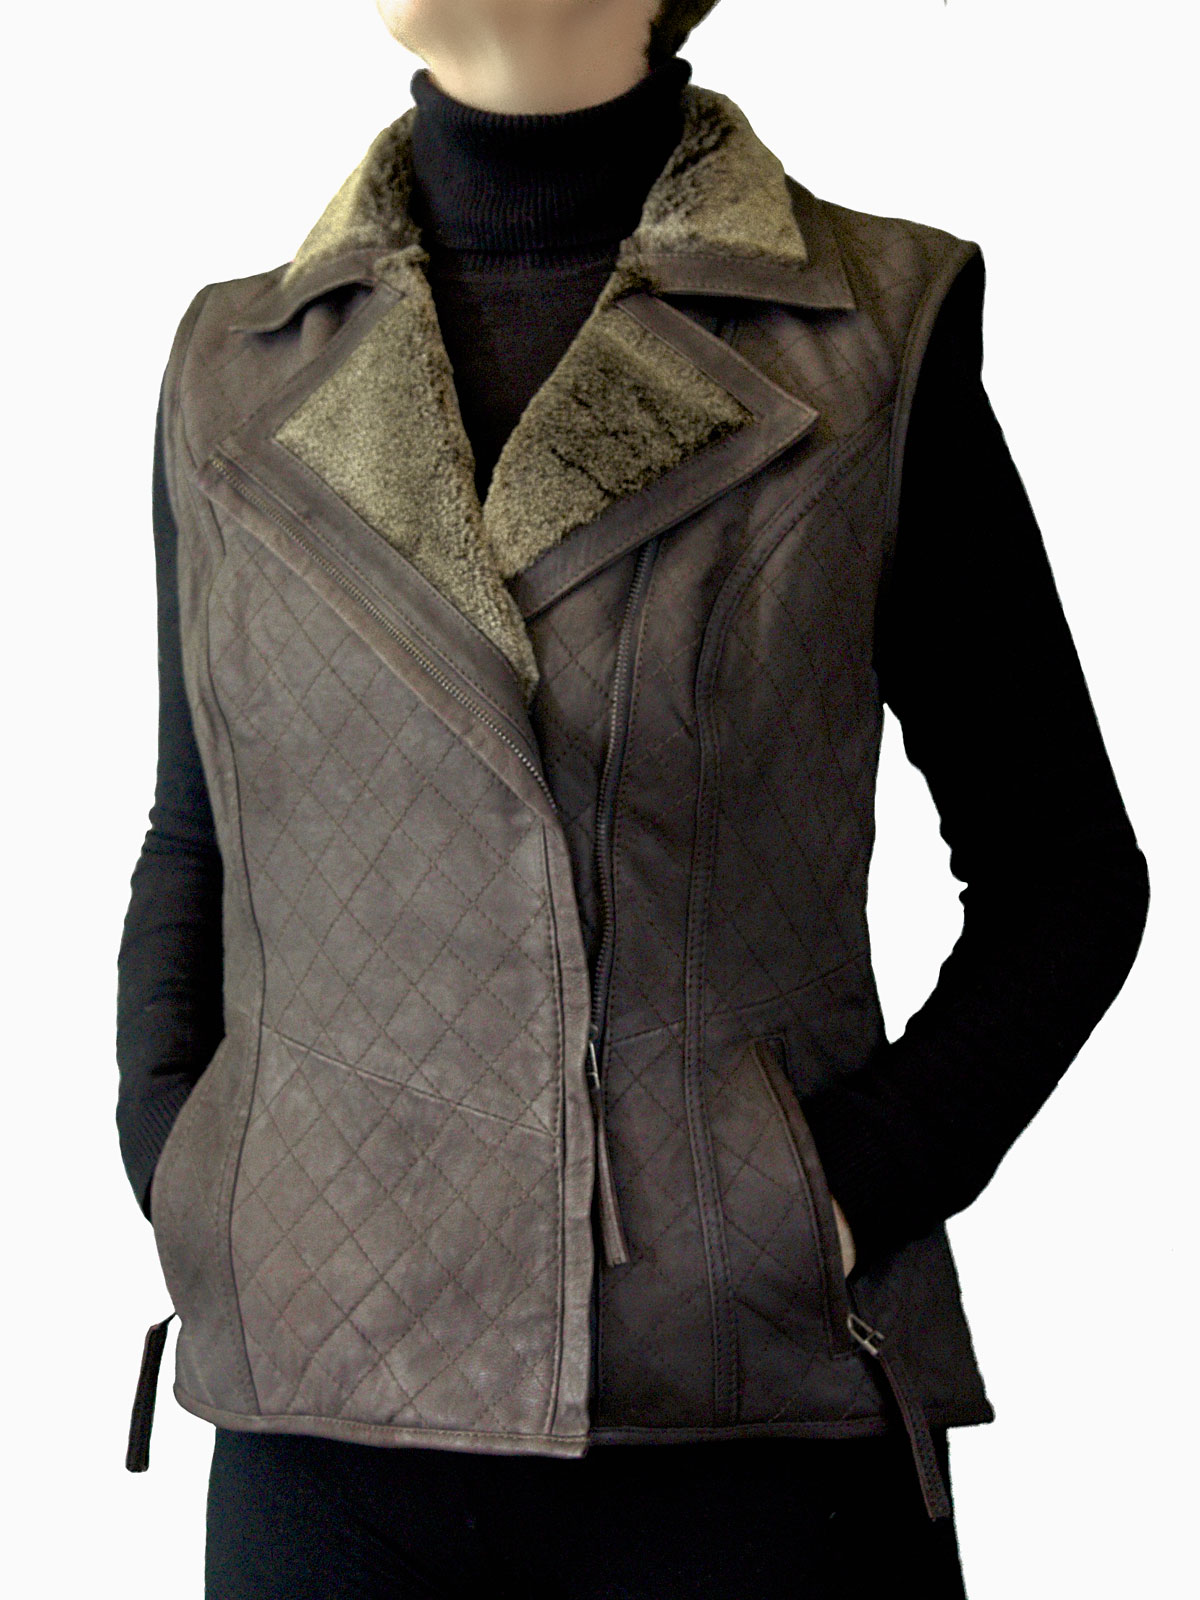 Buy Gilets from the Womens department at Debenhams. You'll find the widest range of Gilets products online and delivered to your door. Shop today!